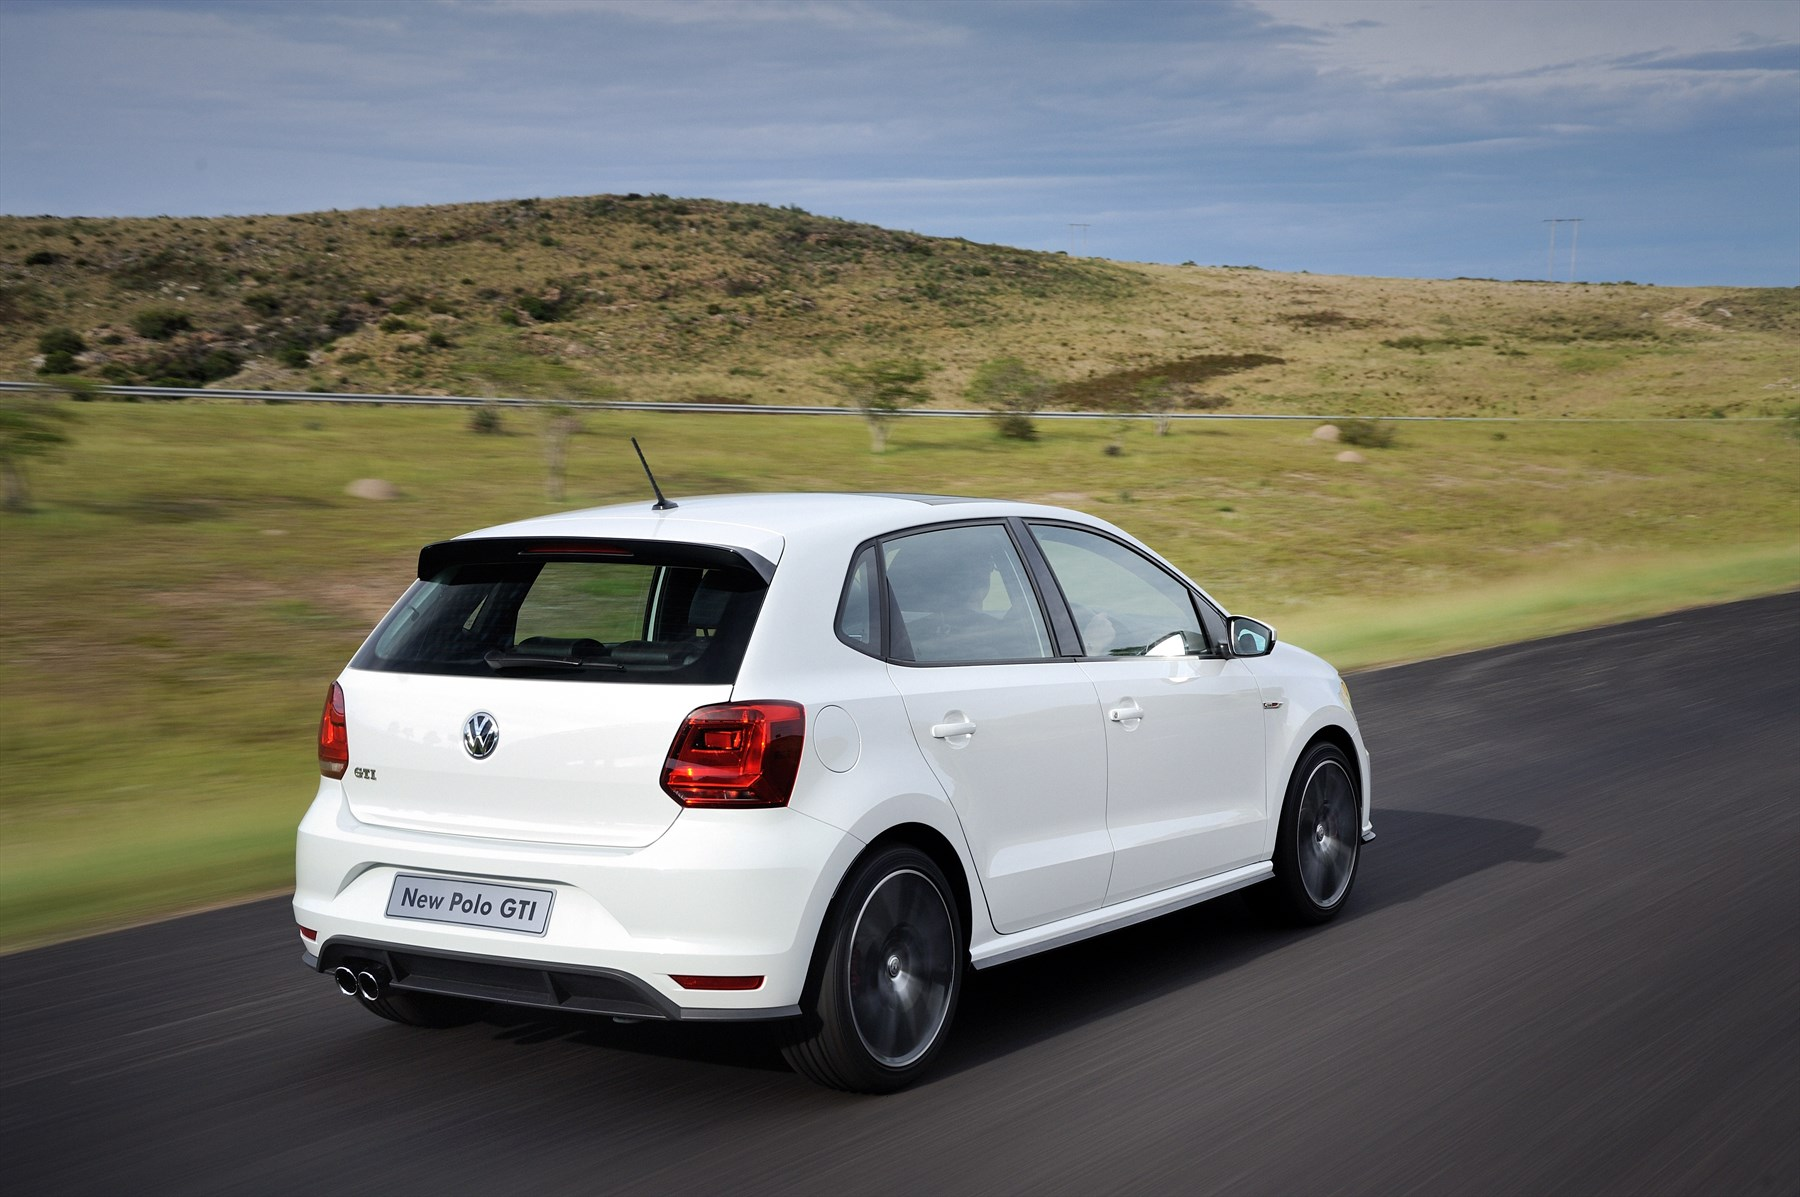 road test vw polo gti ebizmototring thegandra naidoo. Black Bedroom Furniture Sets. Home Design Ideas